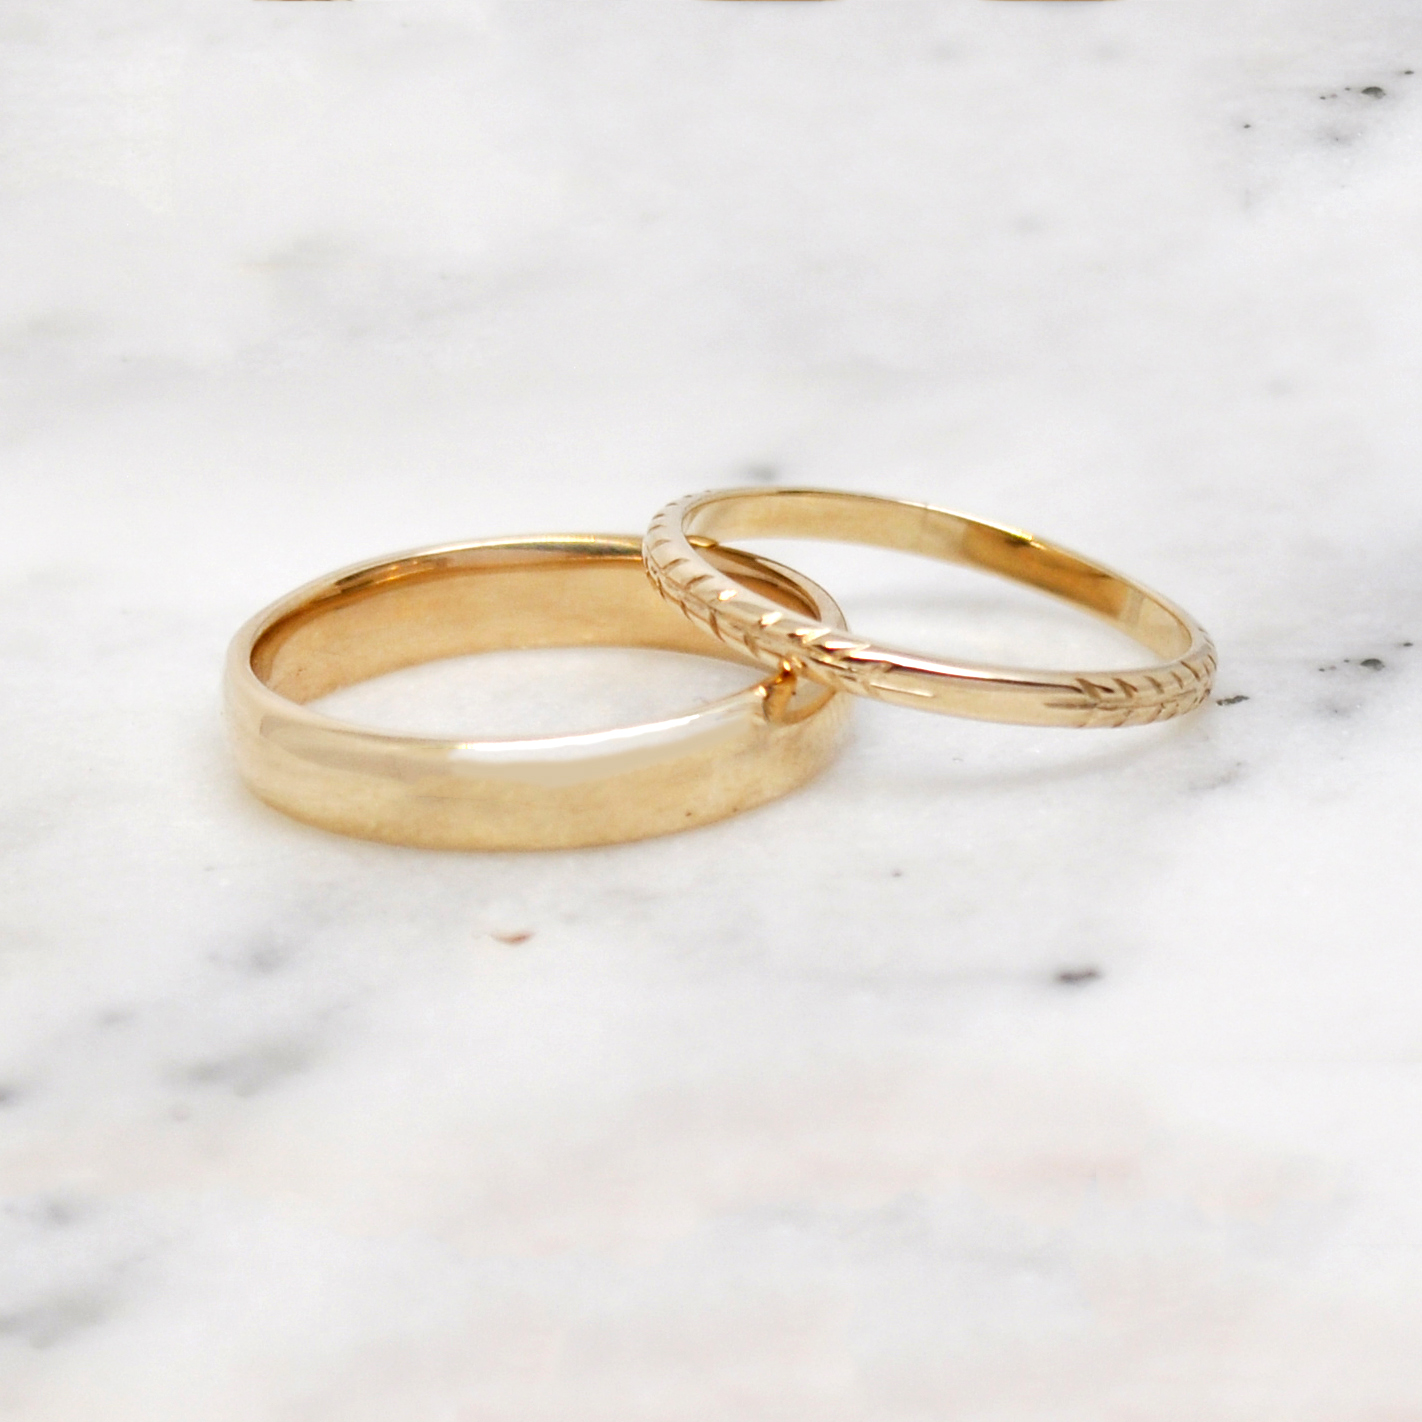 10k custom wedding bands with intricate hand engraving